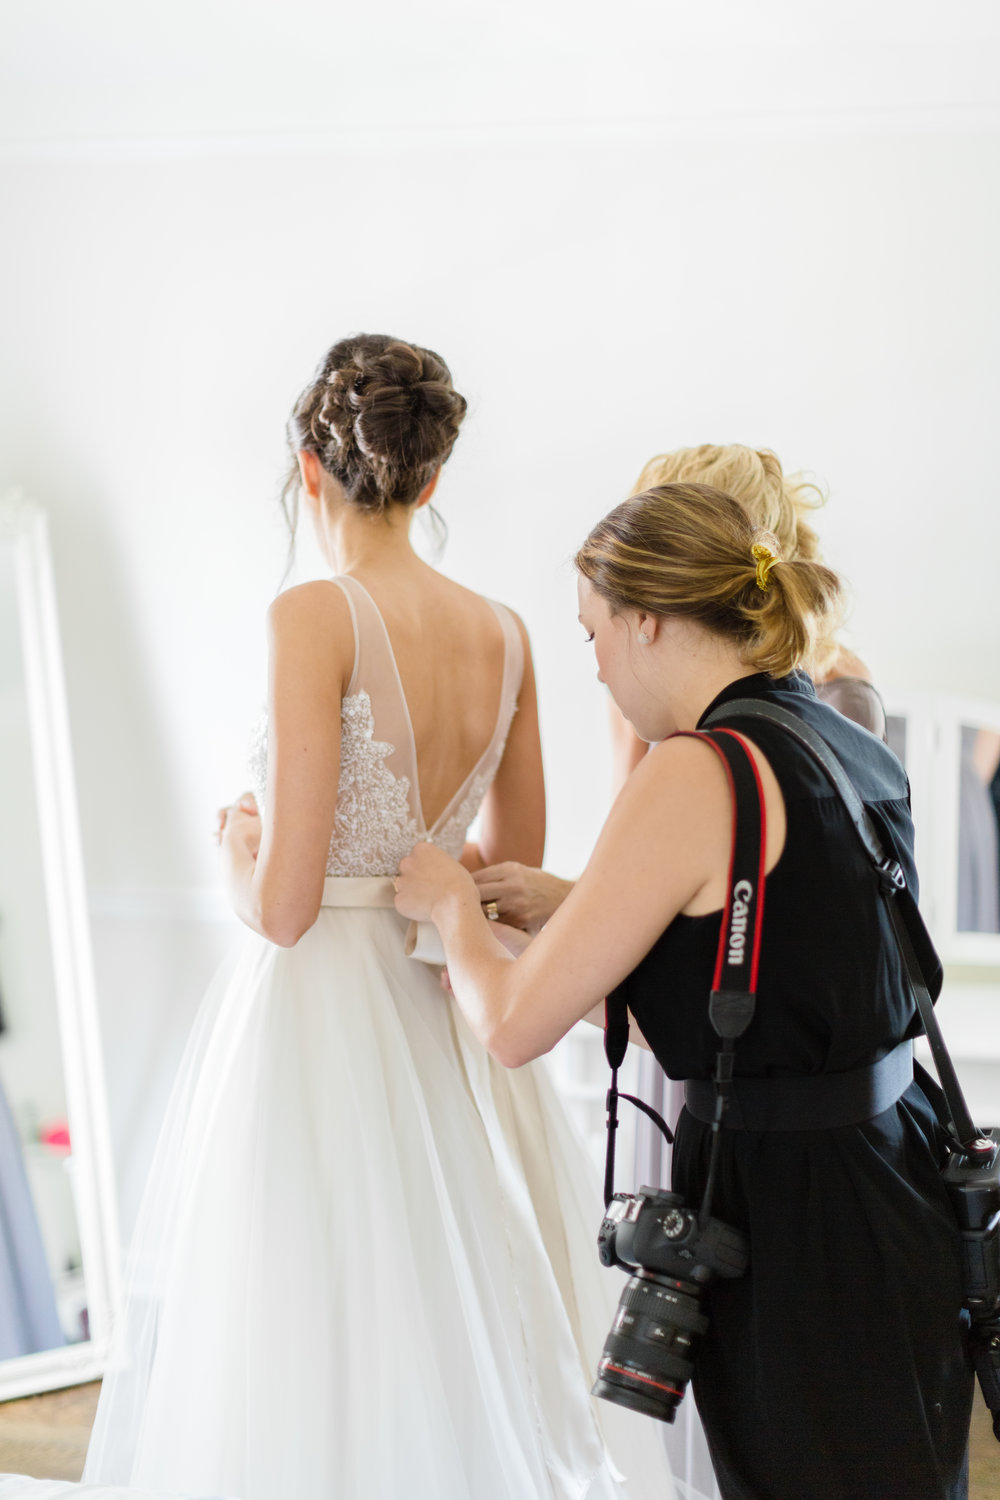 And sometimes -- I get to help the bride get ready!  |  Thanks for the BTS shot Anna Aguiar!